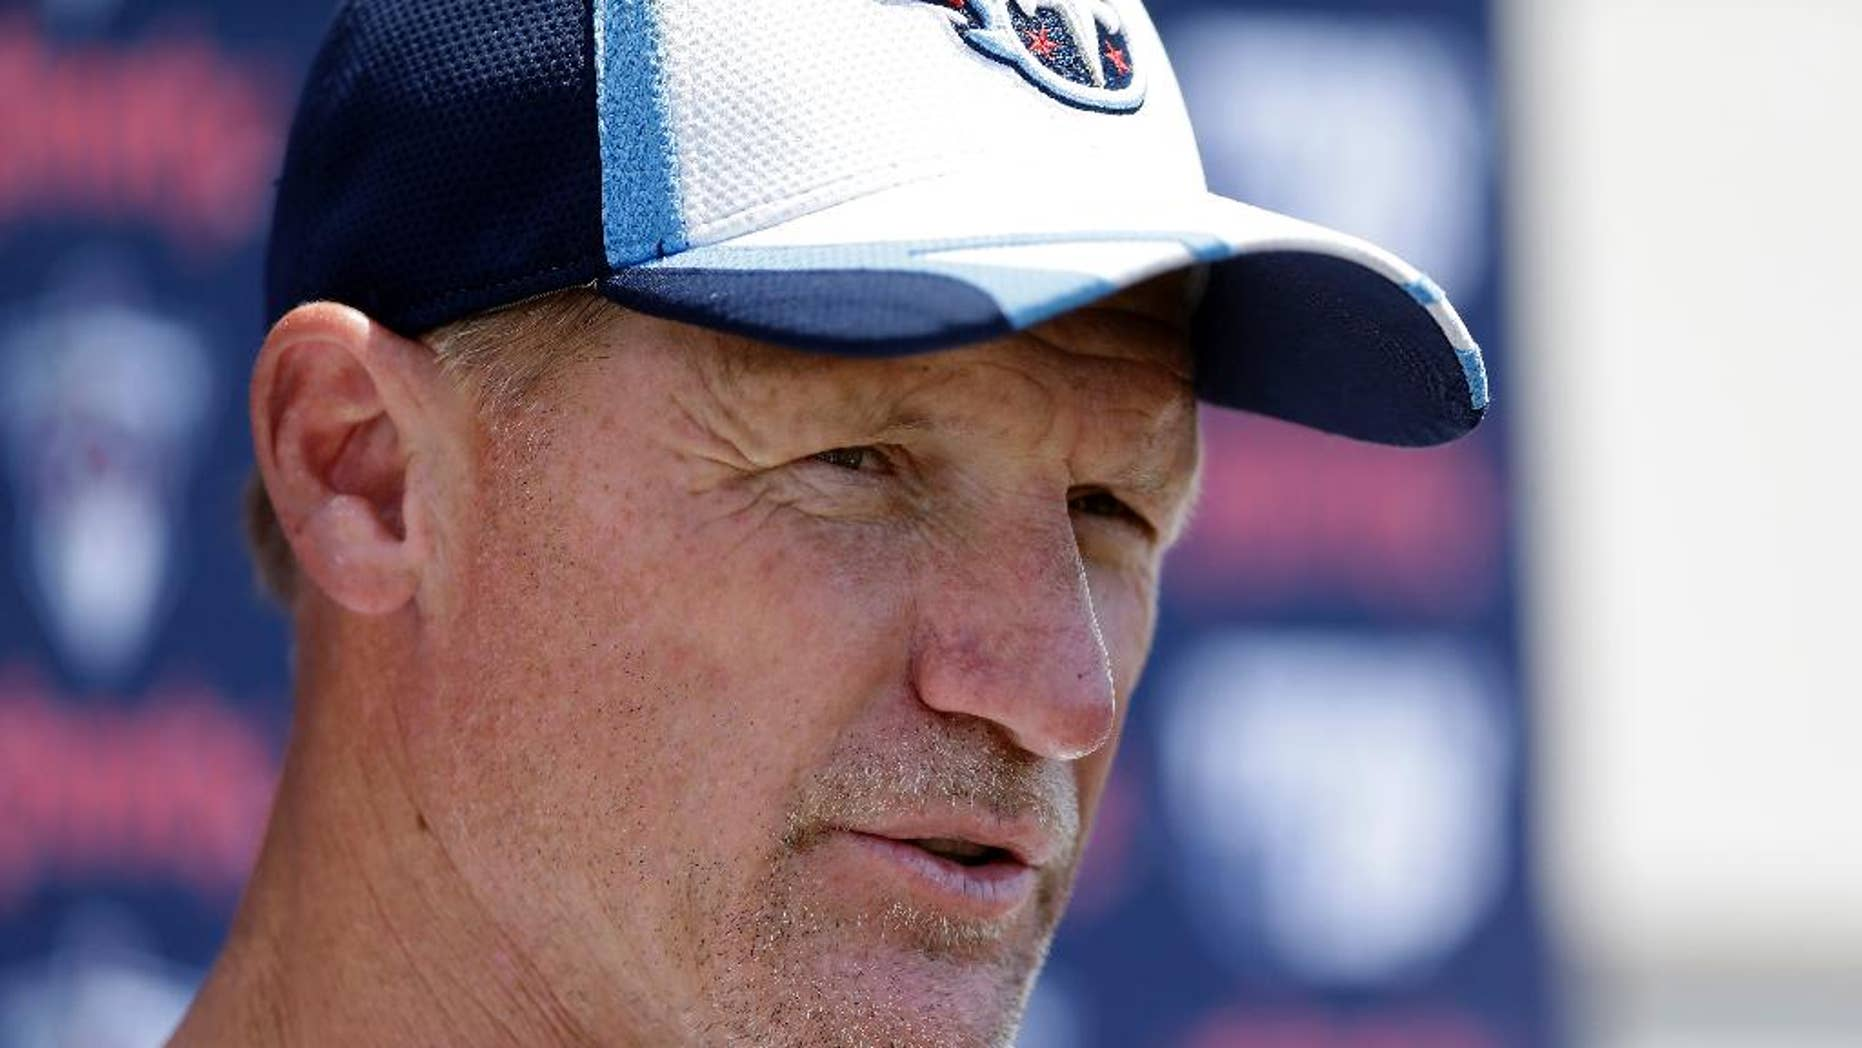 ADVANCE FOR WEEKEND EDITIONS, OCT. 18-19 - FILE -  In this July 26, 2014, file photo, Tennessee Titans head coach Ken Whisenhunt answers questions during NFL football training camp in Nashville, Tenn. The Titans (2-4) have two games left before their bye, and two wins would get them back to .500 at 4-4. So first-year coach Whisenhunt has dangled a bit of a carrot for his Titans, according to some of his players. (AP Photo/Mark Humphrey, File)